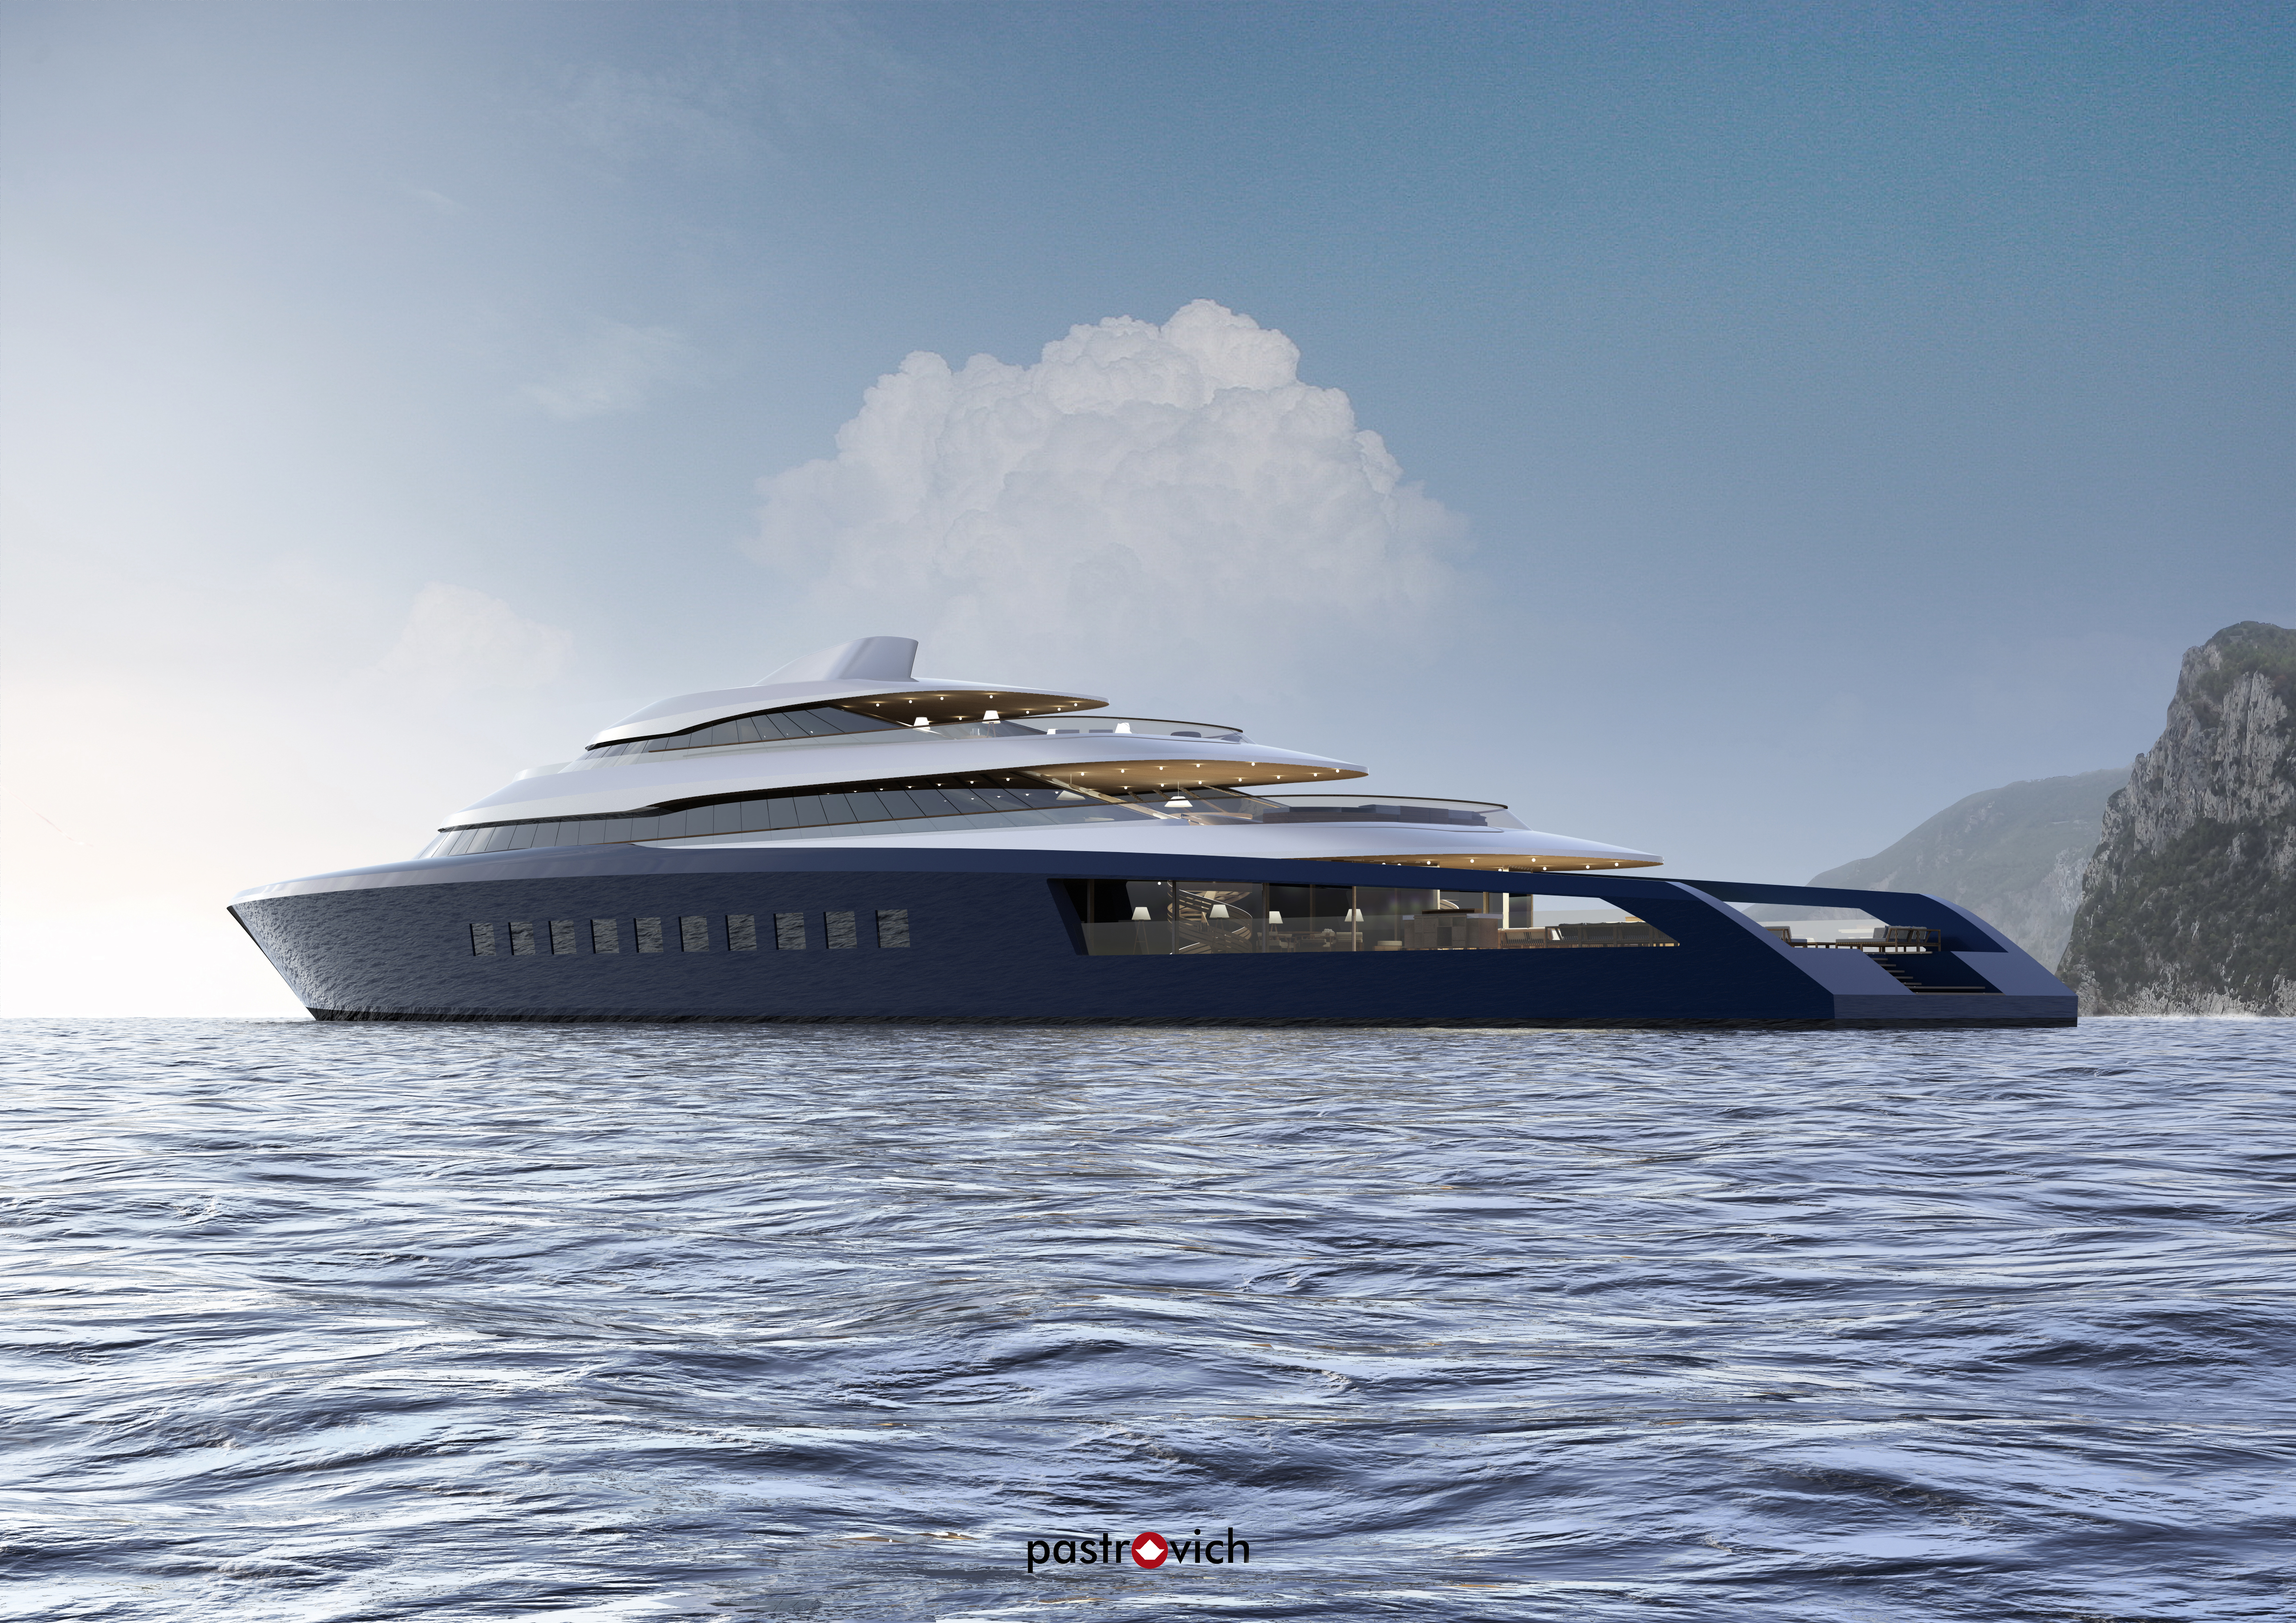 pictures stefano pastrovich s new 80m x prime yacht ybw